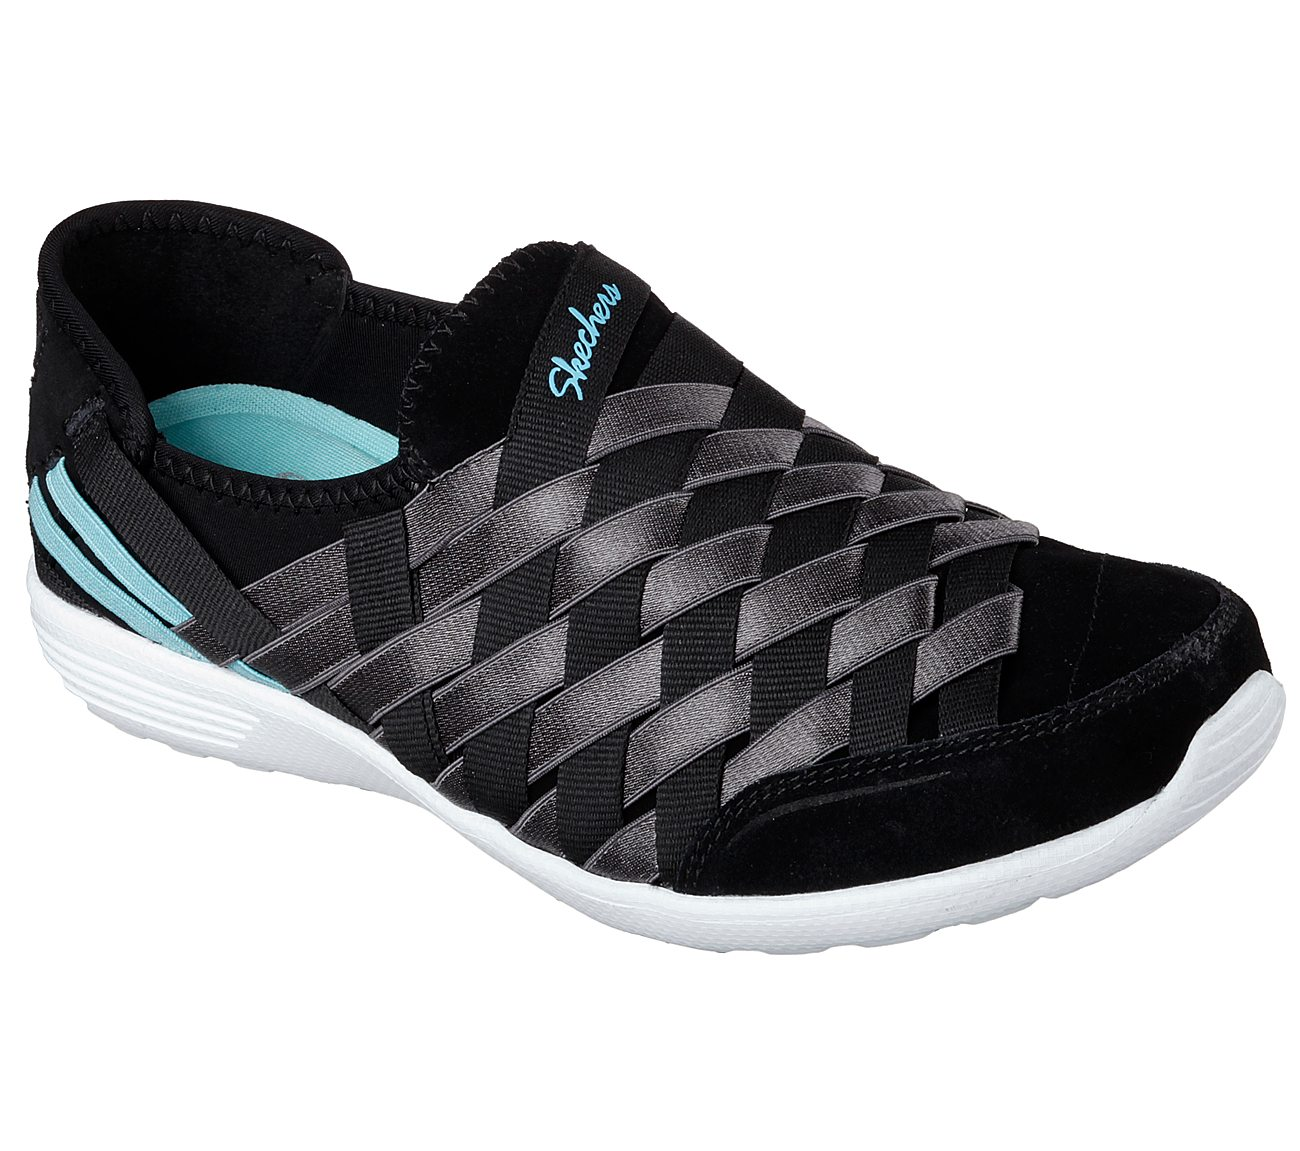 Skechers Shoes  Skechers Destiny 22807 Womens Sports Shoes BlackWhite